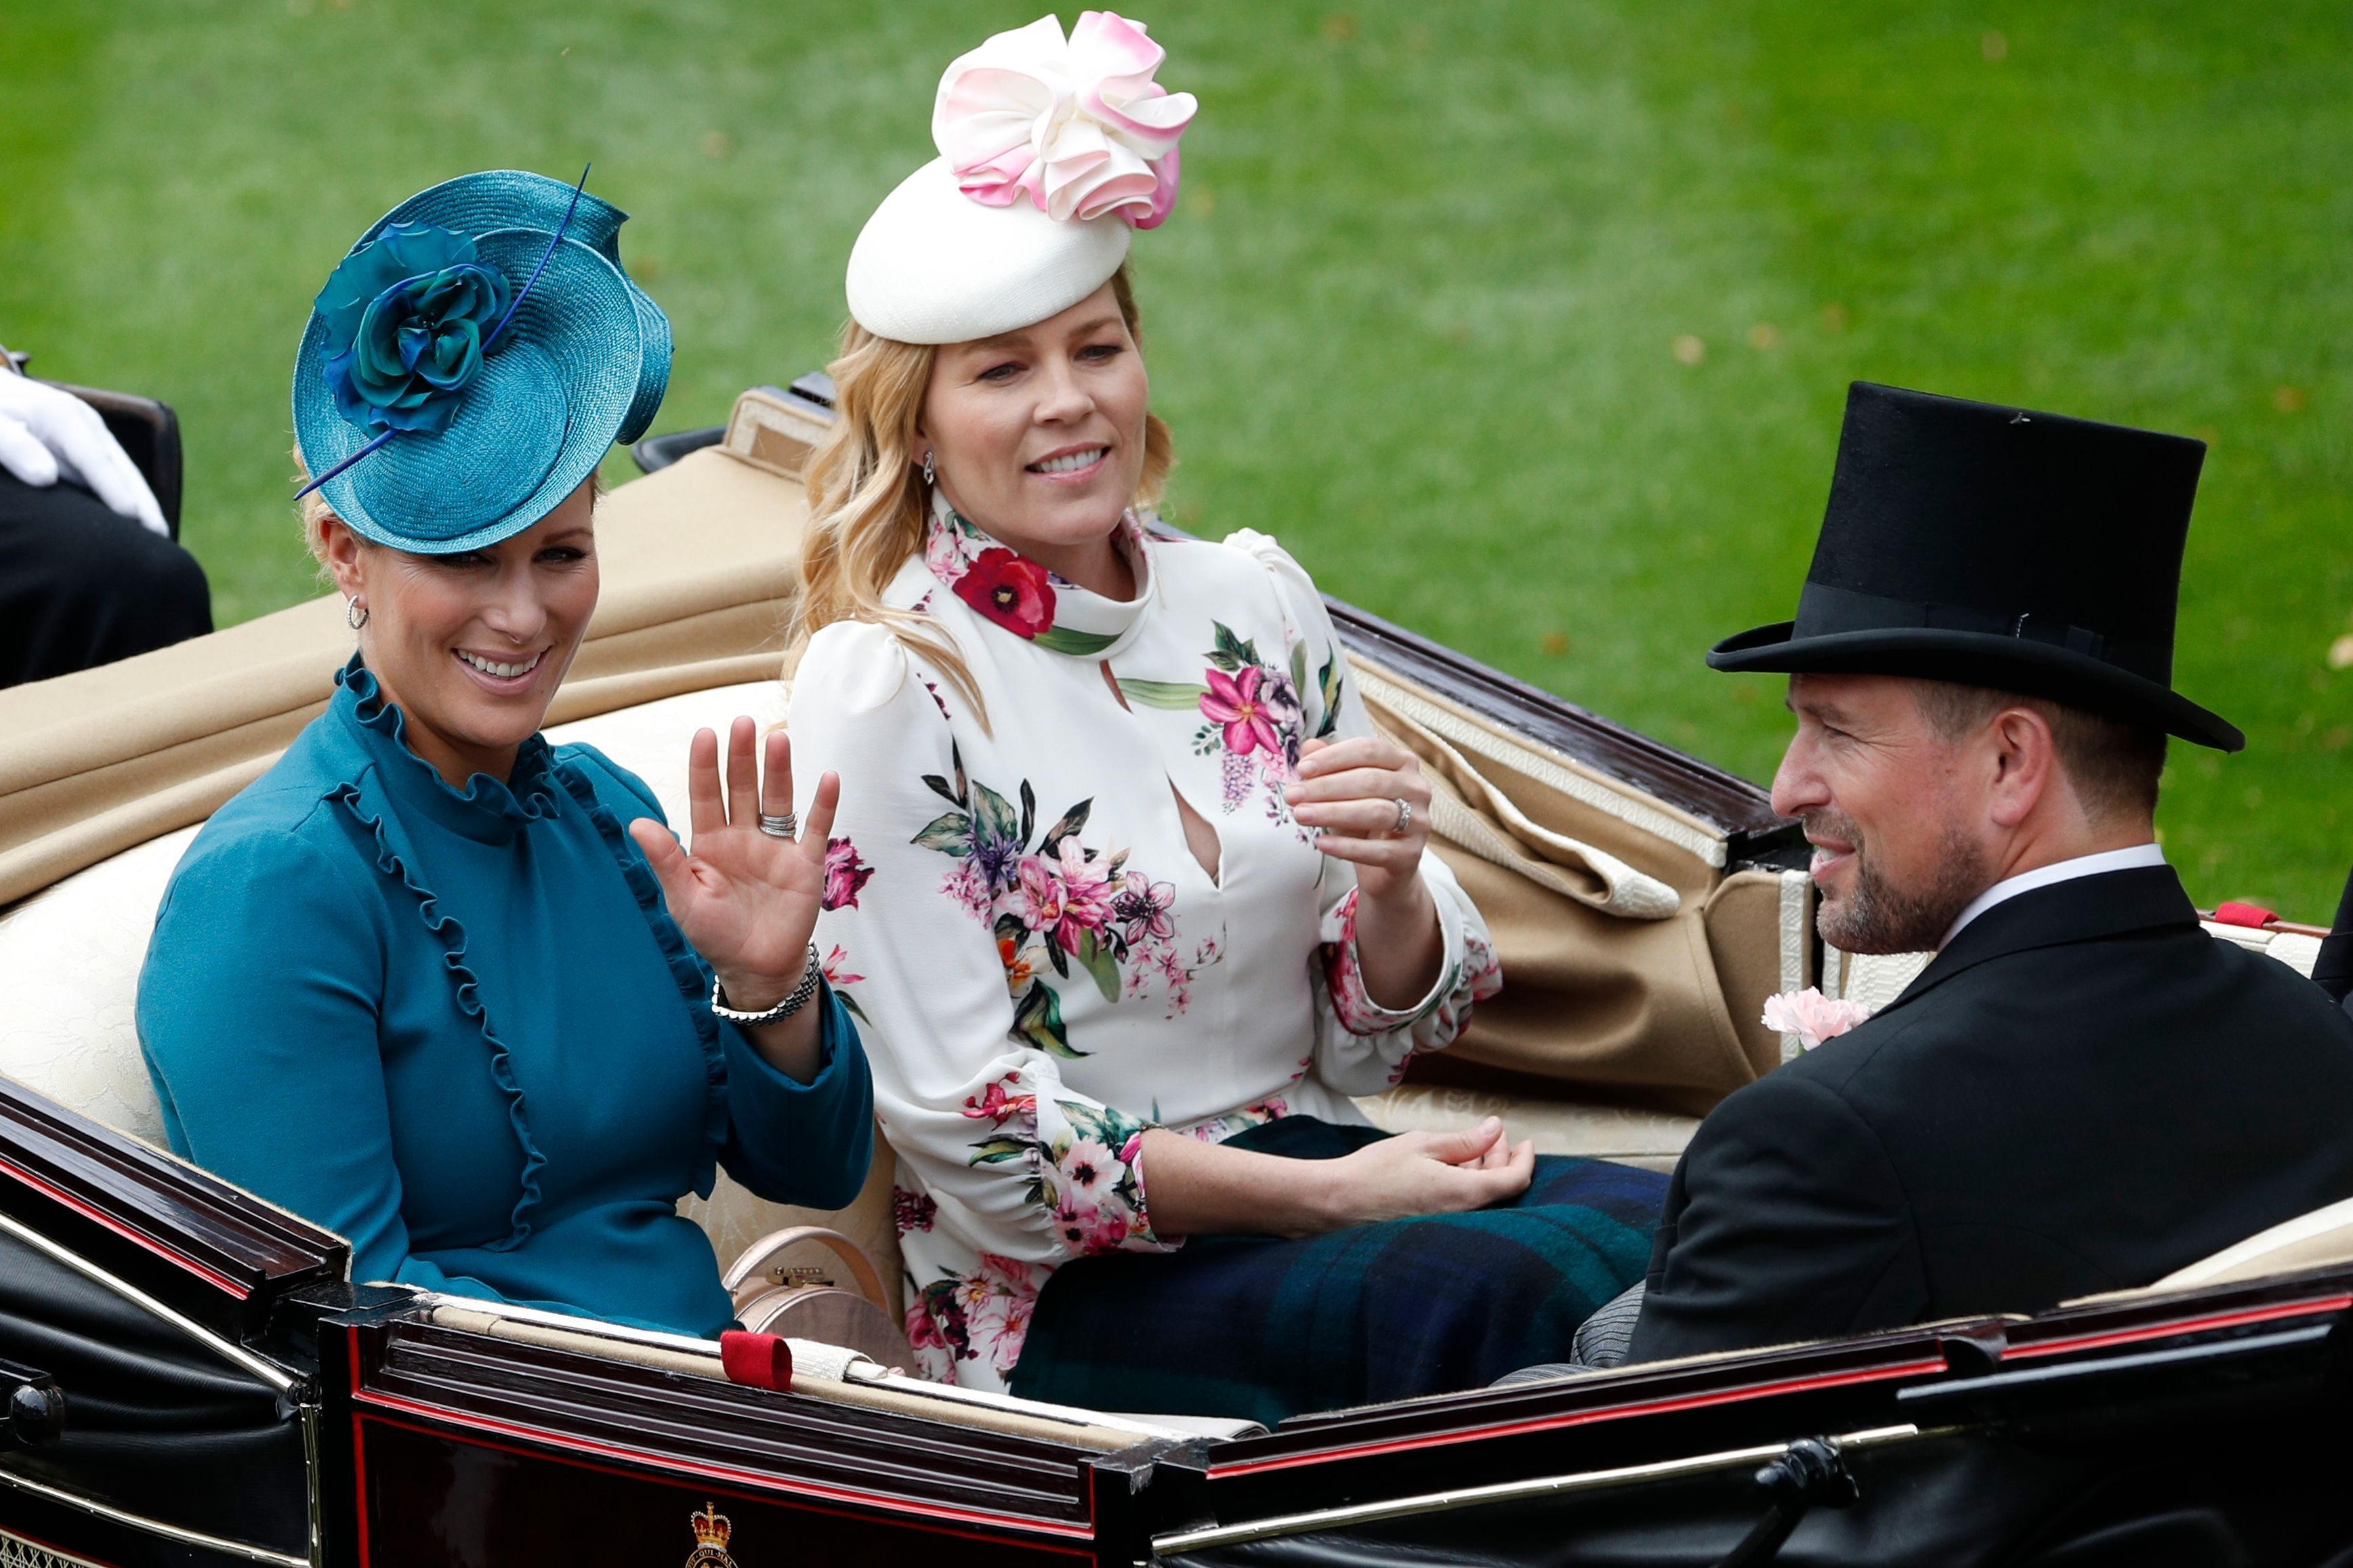 64daf8277e04 Zara Tindall's Best Style Moments - Queen Elizabeth's Granddaughter ...